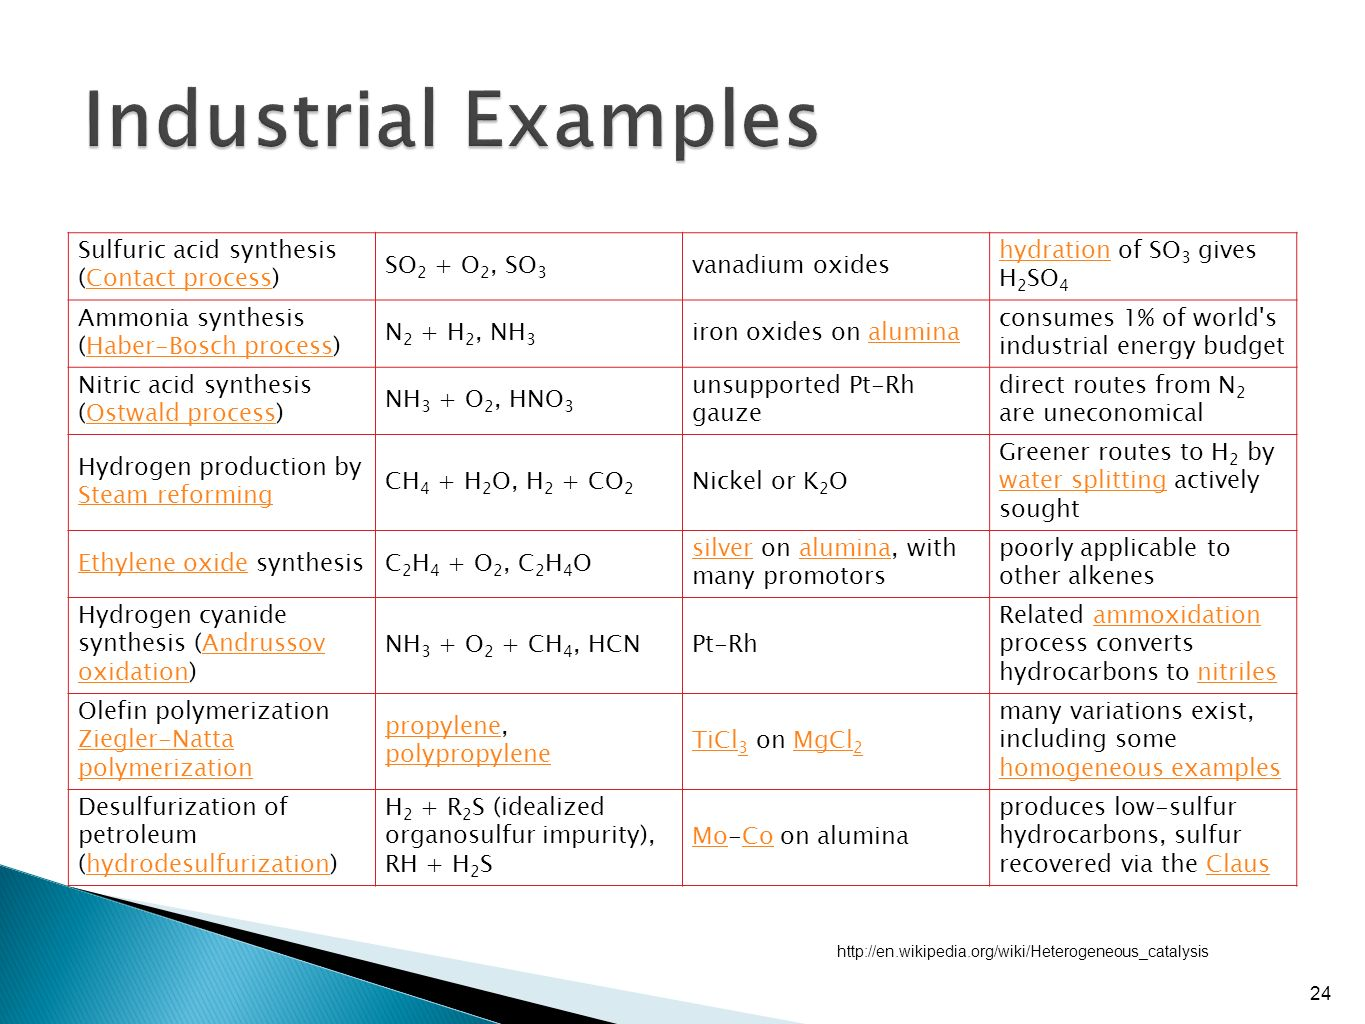 Nanochemistry nan 601 dr marinella sandros ppt video online industrial examples sulfuric acid synthesis contact process pooptronica